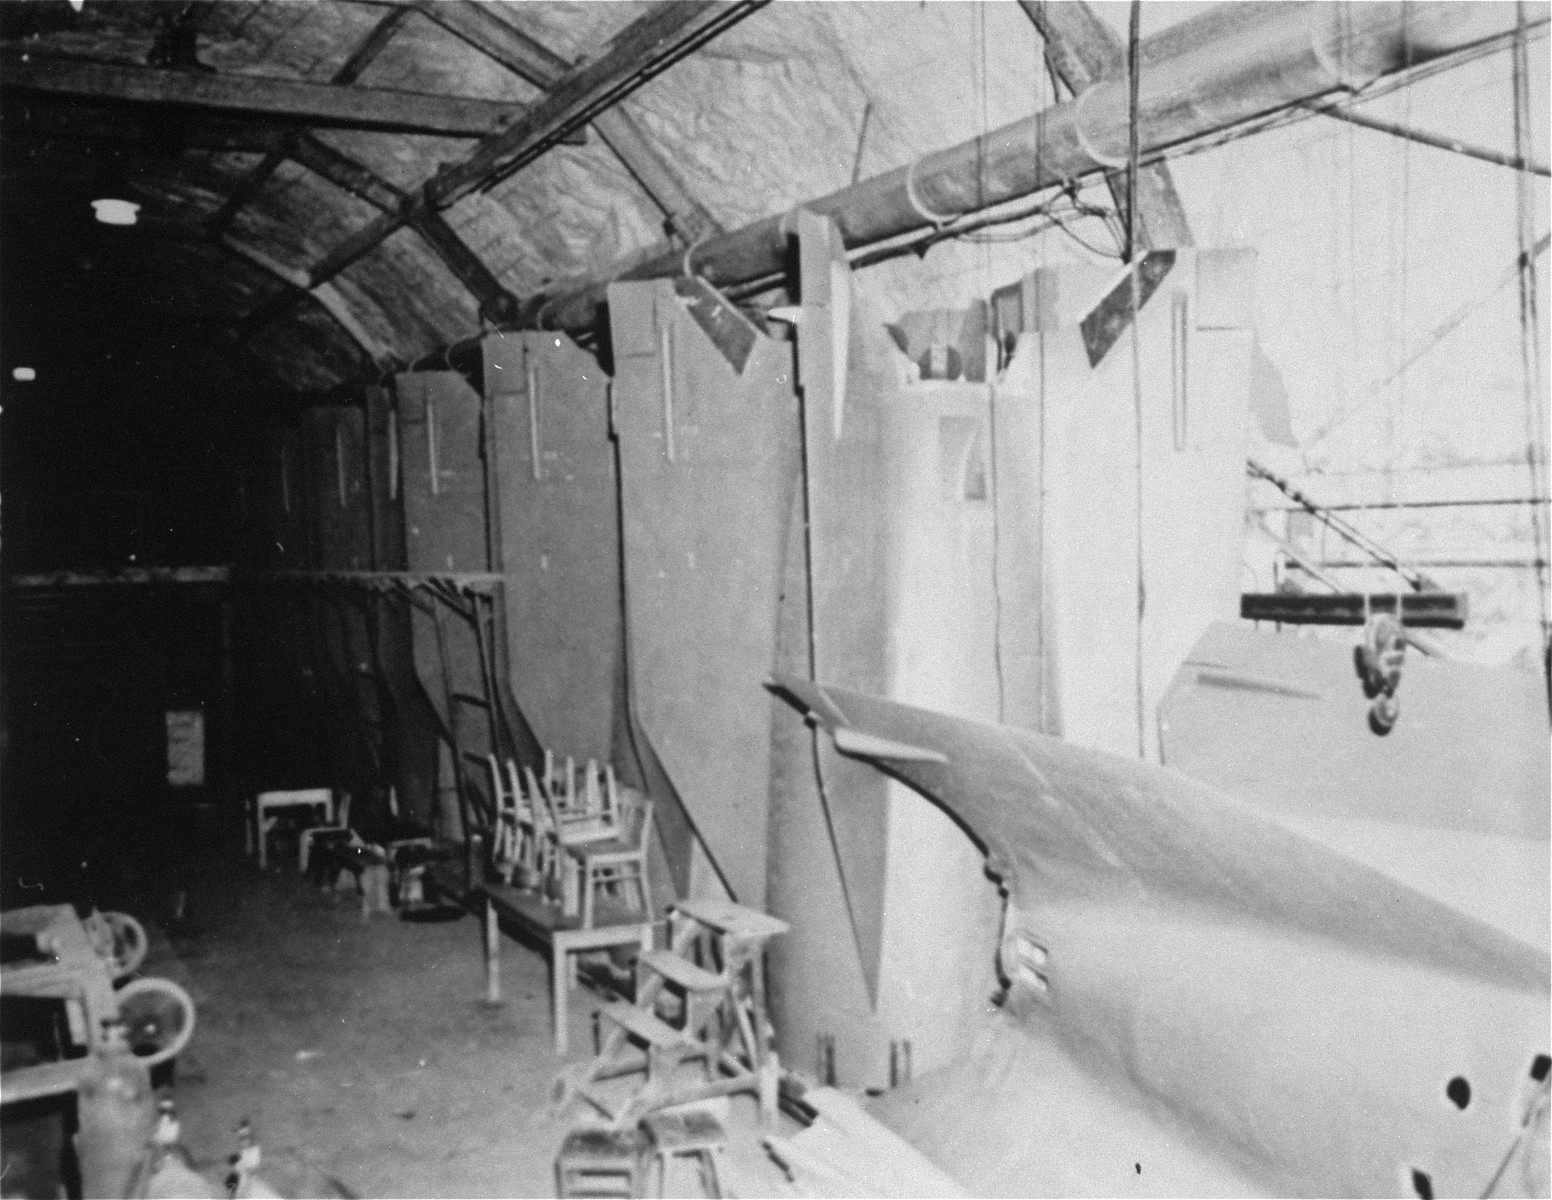 Tail fins of V-2 rockets on the tail section assembly line.